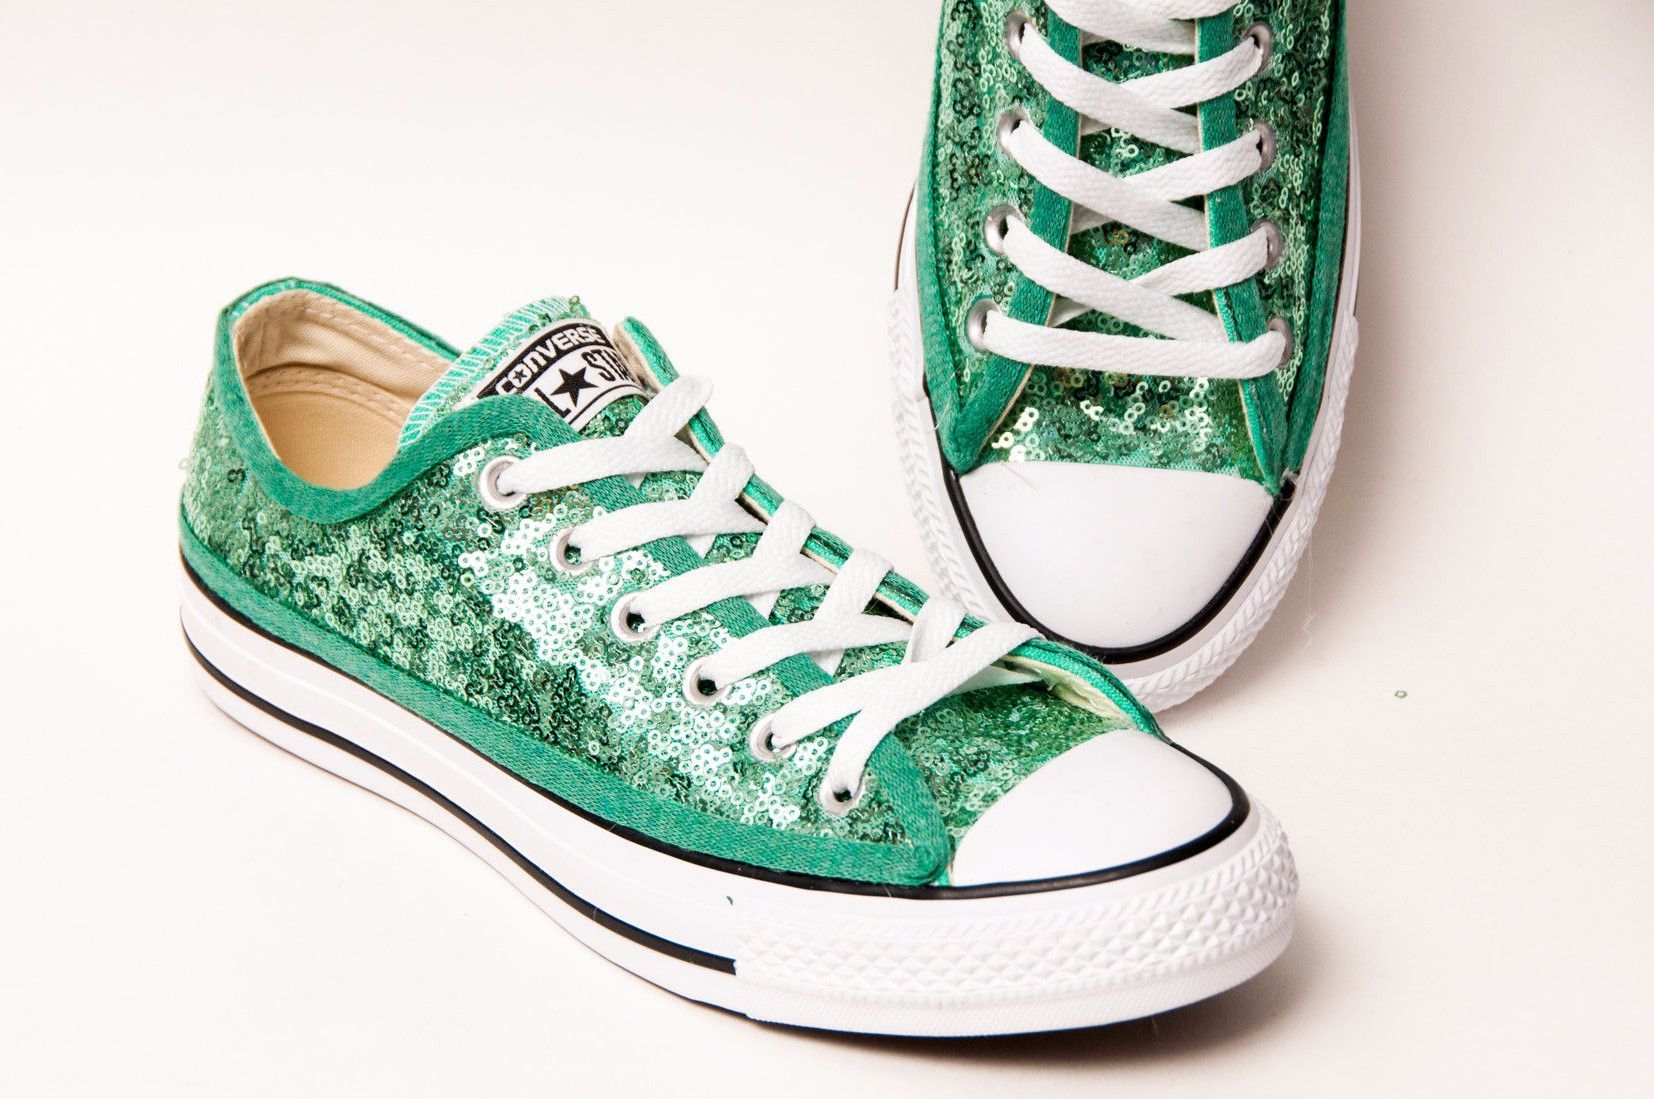 ed4e63b99228a Select Your Color of Starlight Sequin Name Brand Canvas Low Tops ...